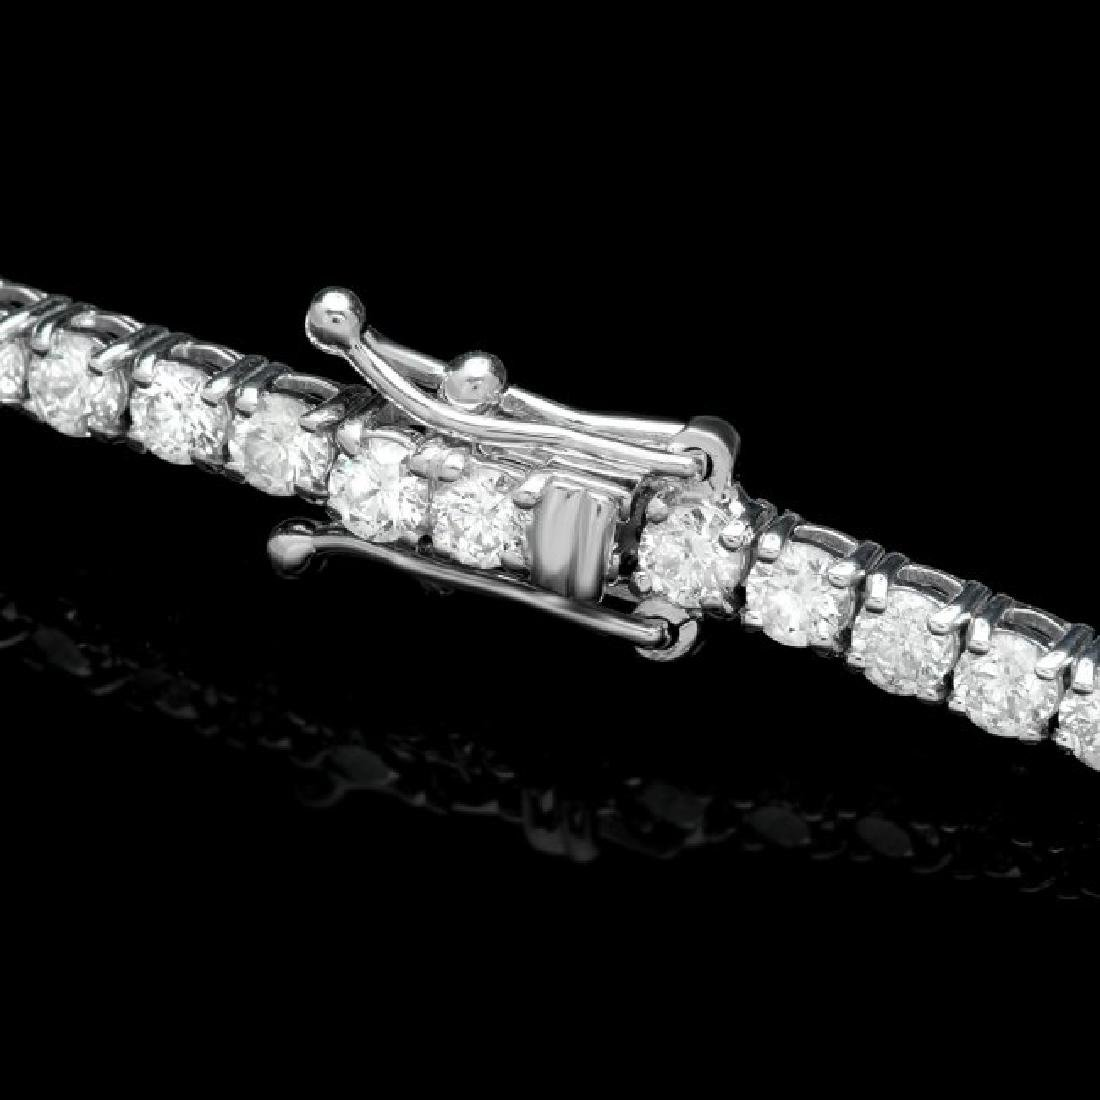 18k White Gold 4.65ct Diamond Bracelet - 2